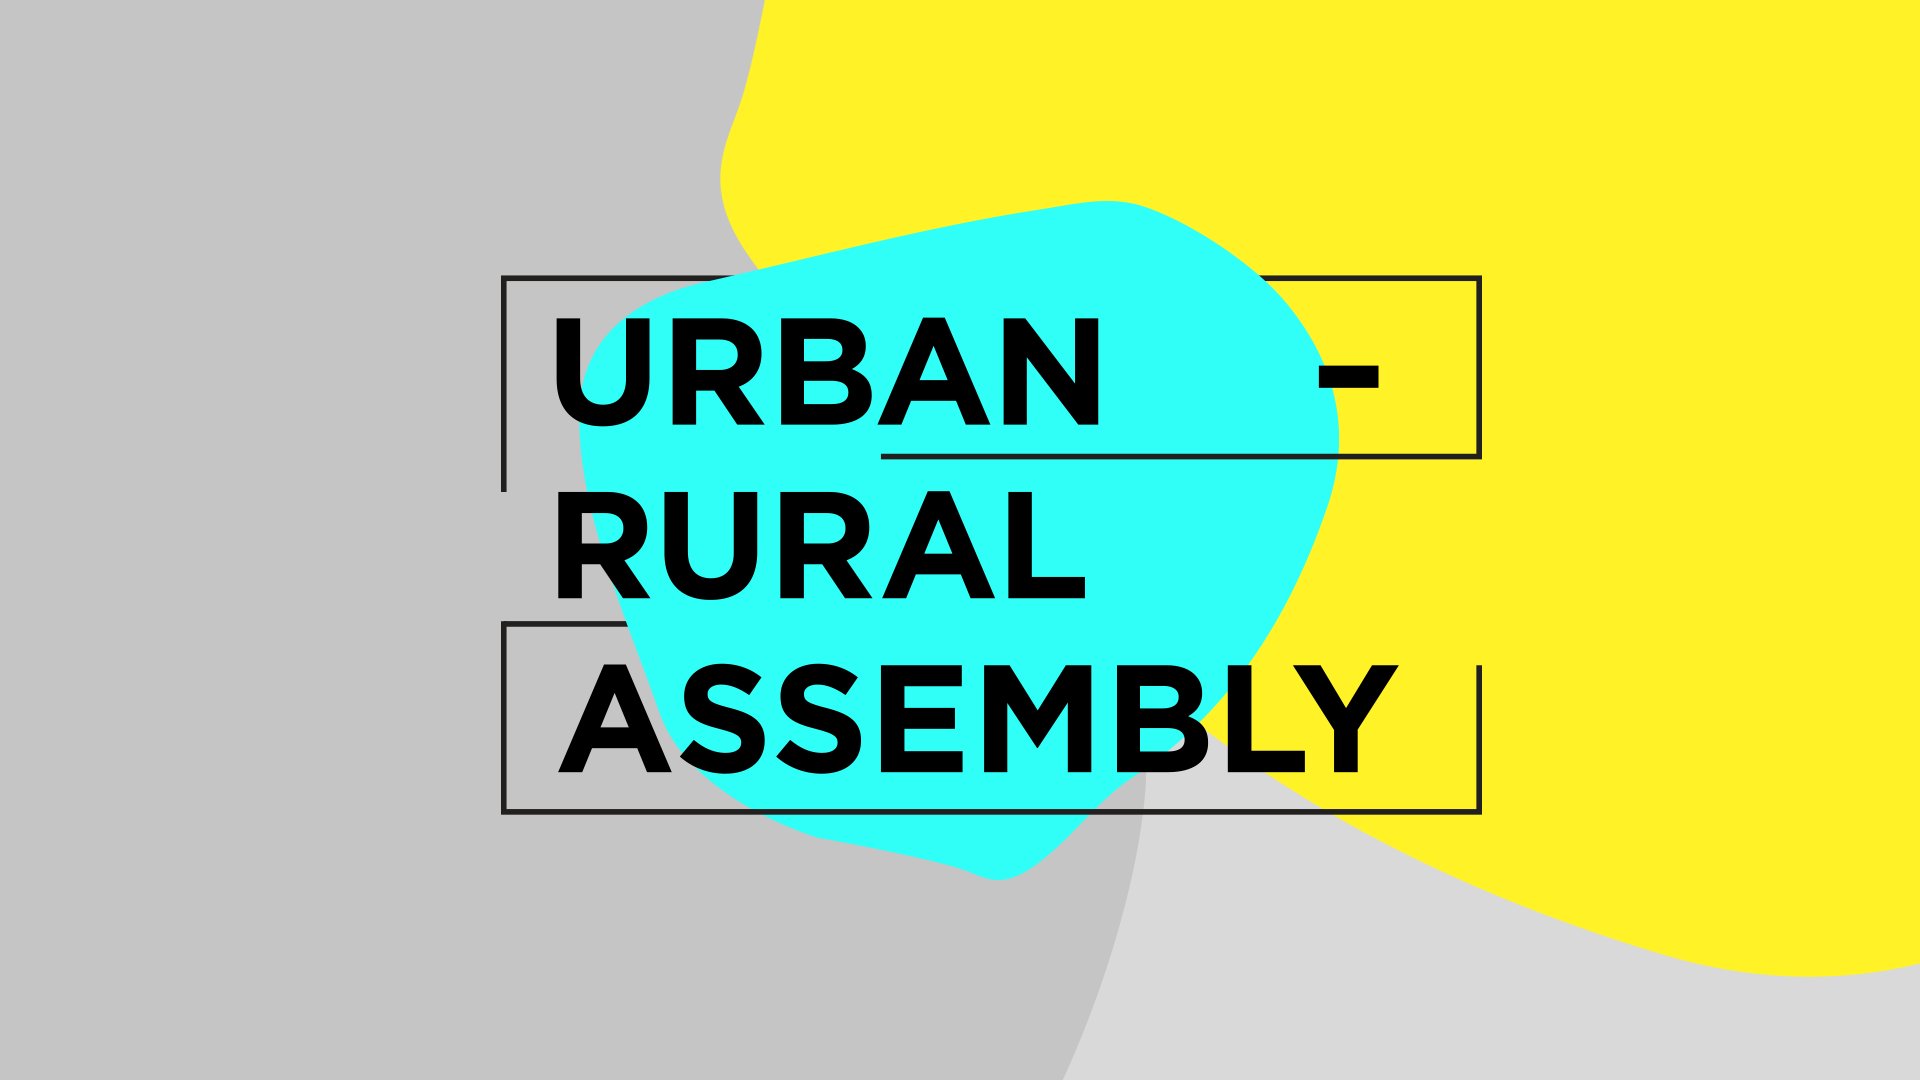 Urban-Rural Assembly (URA)